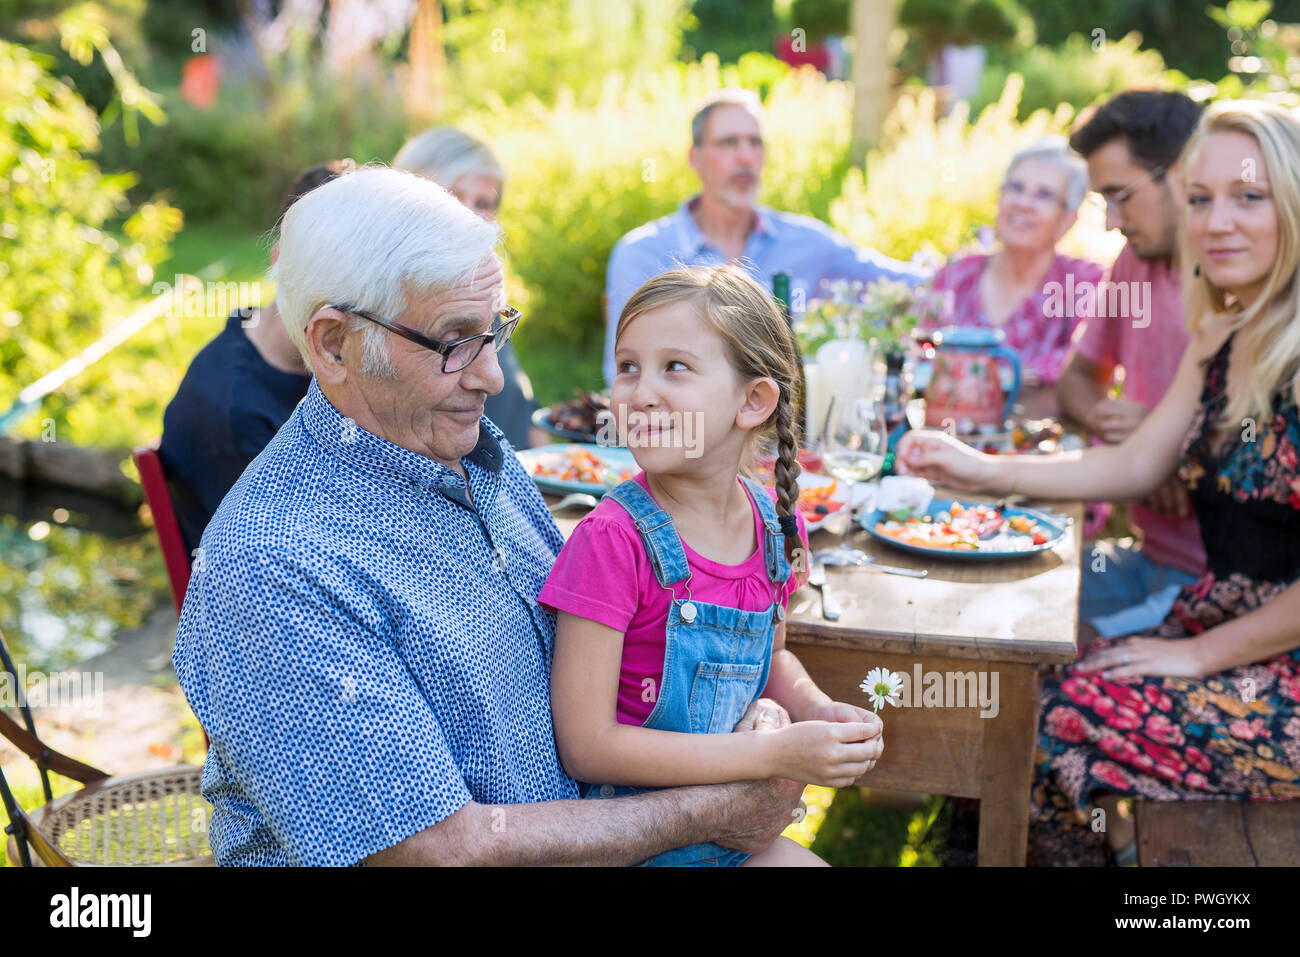 Family picnic closeup on a grandfather and his granddaughter - Stock Image